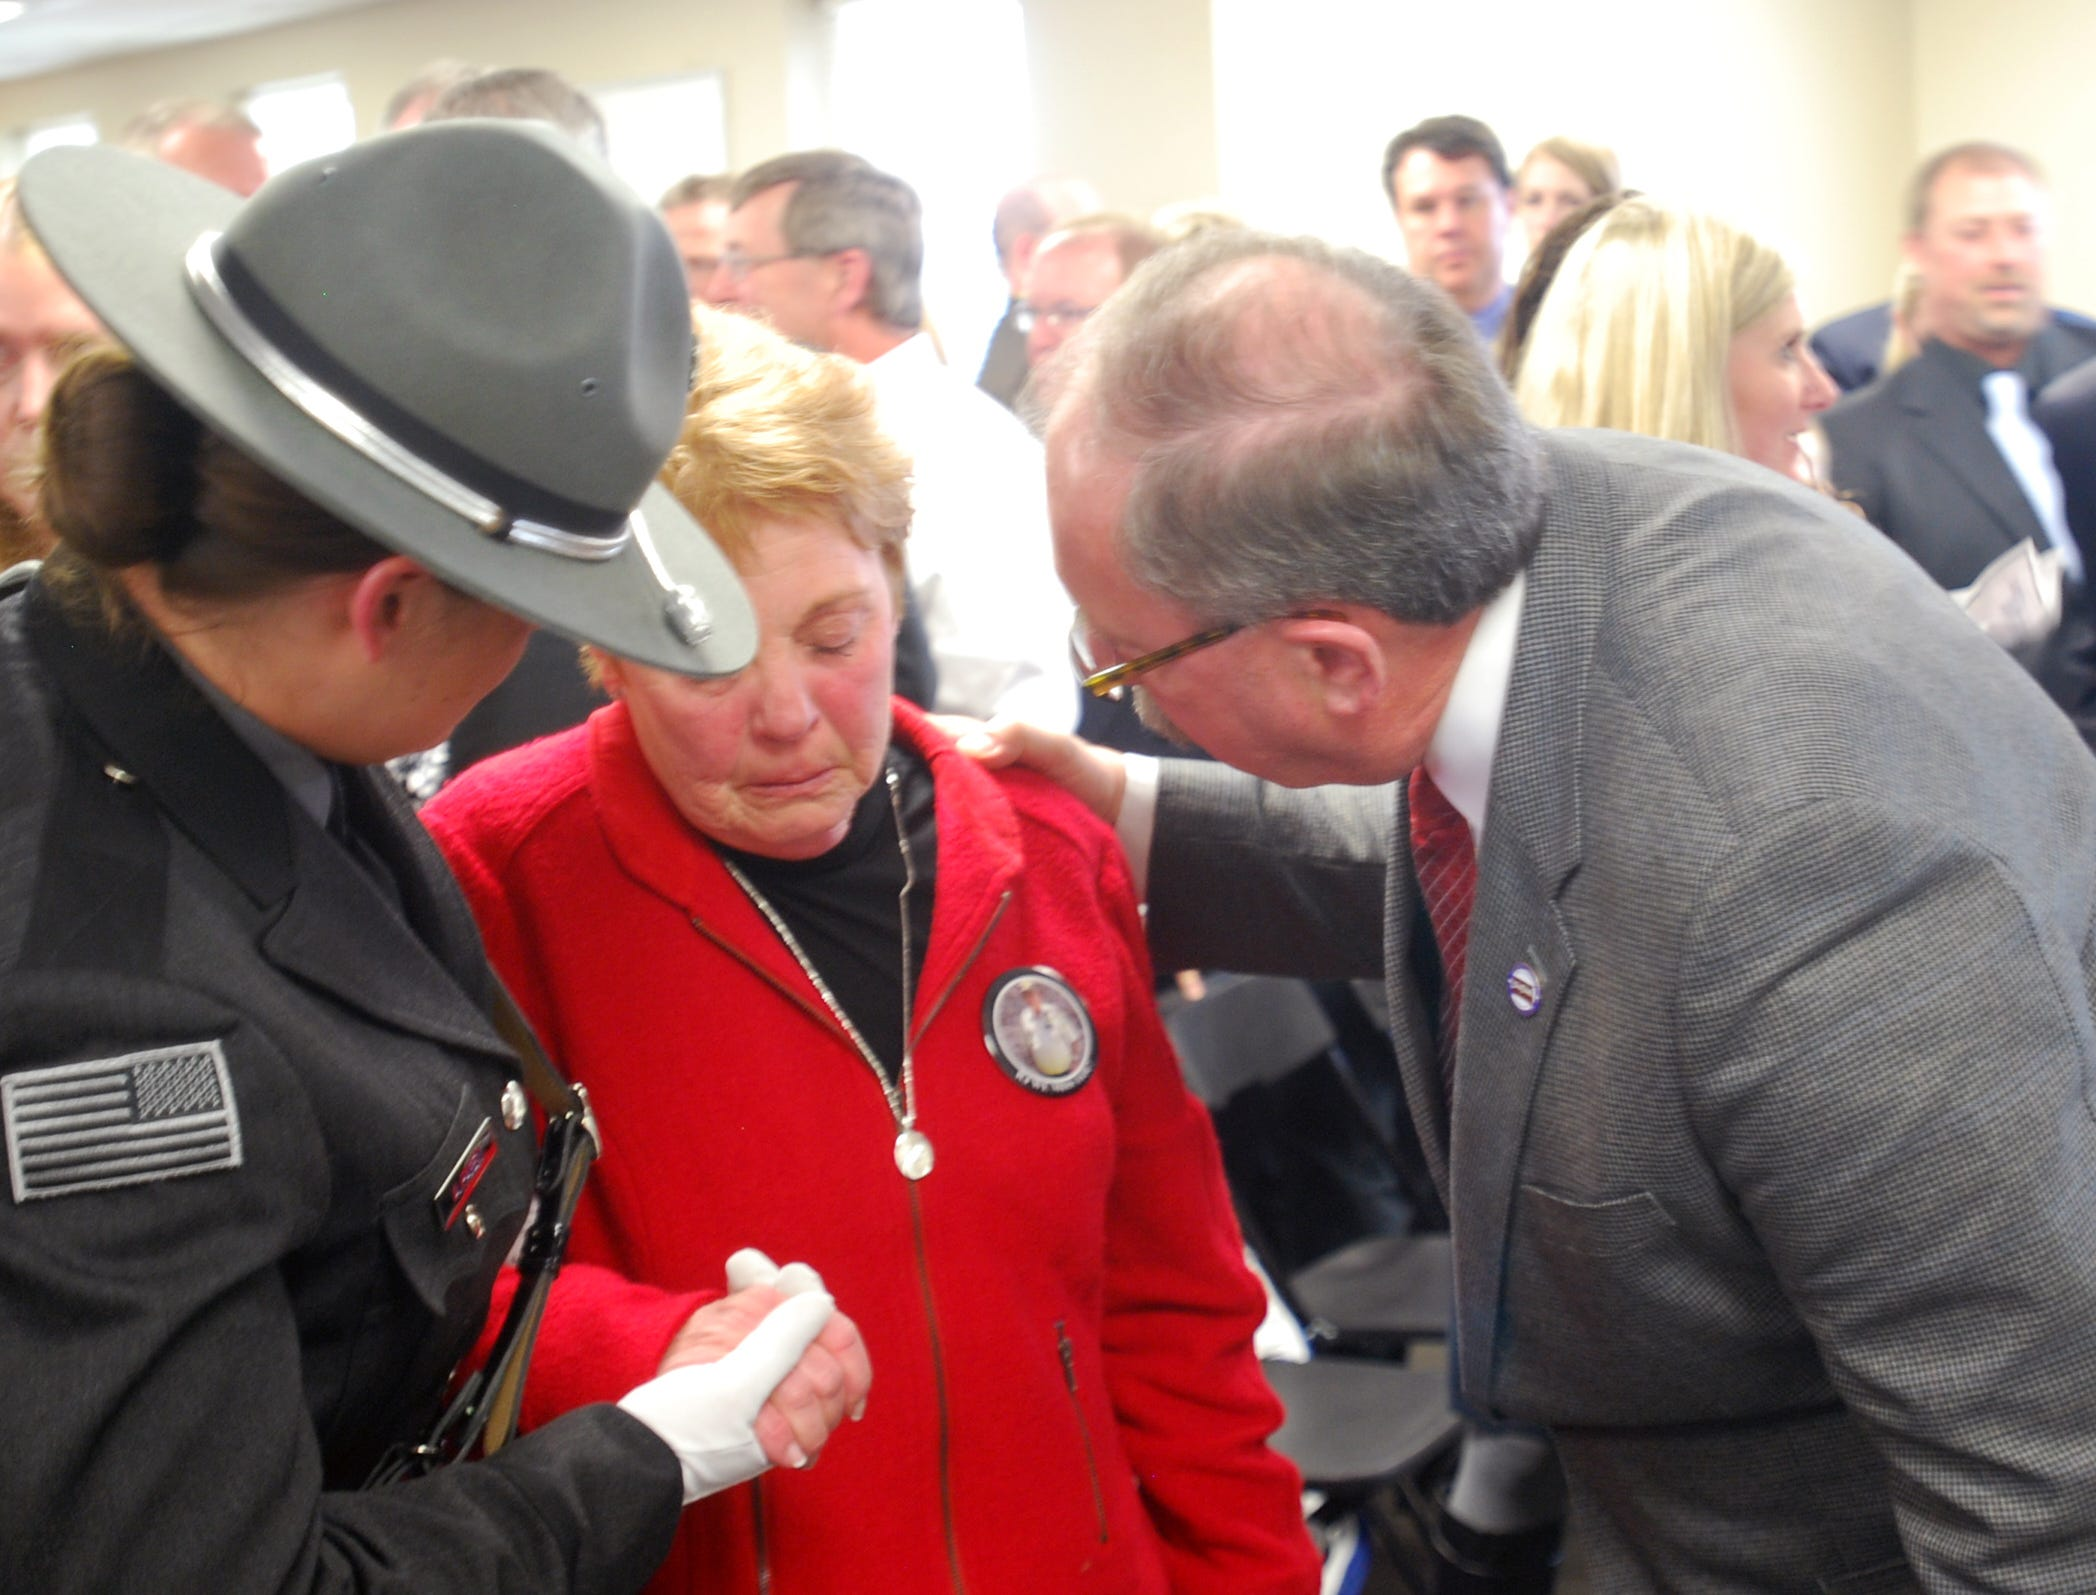 """A member of the South Dakota Department of Corrections Honor Guard and state penitentiary prison Warden Doug Weber with Lynette Johnson at the dedication of penitentiary training academy in honor of her late husband Ron """"RJ"""" Johnson. The dedication was Thursday, April 12, a year after Johnson was killed while on duty by two inmates. More than 100 people were on hand for the dedication."""